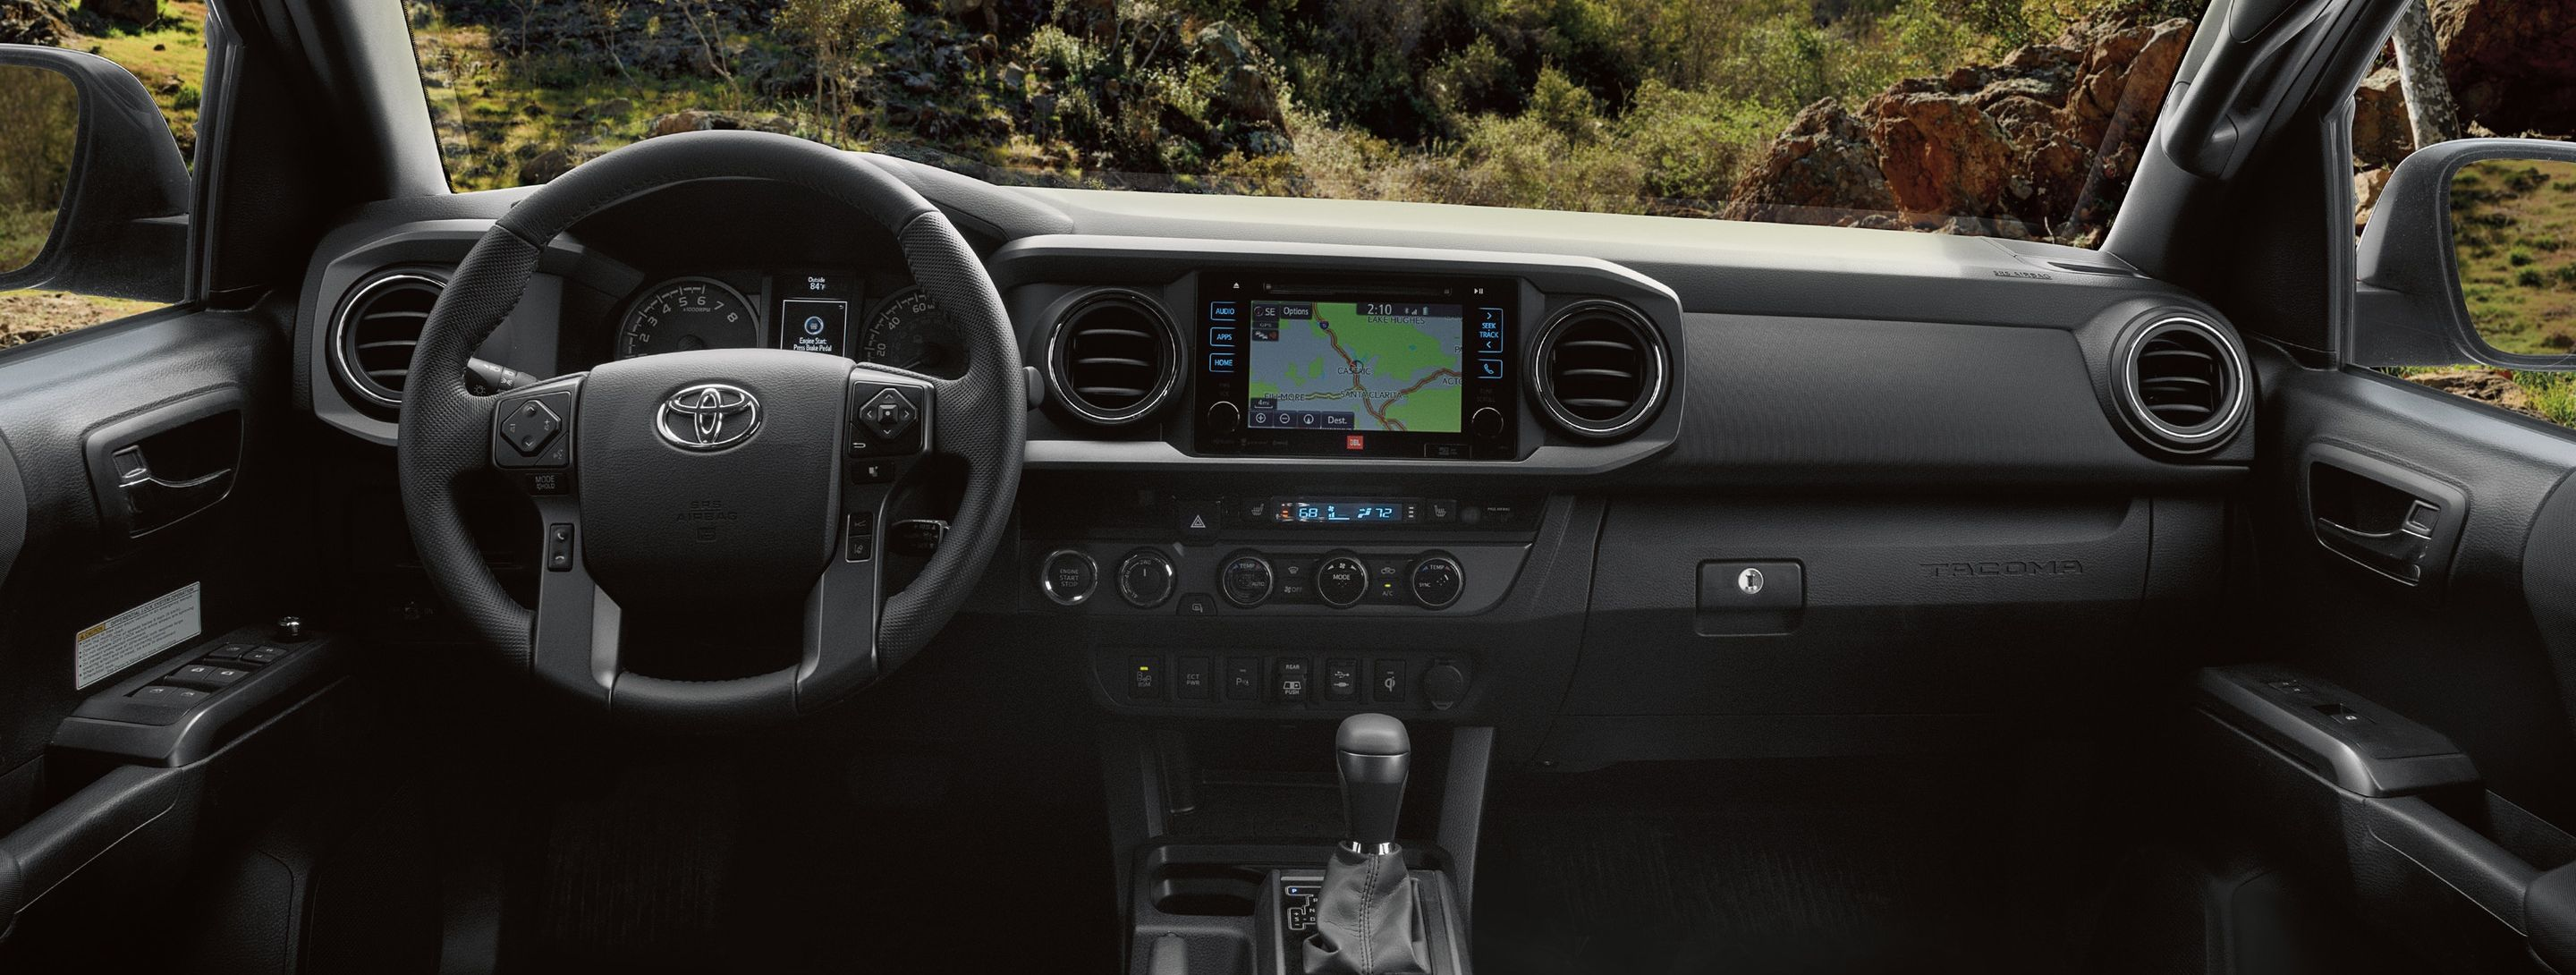 2019 Tacoma Dashboard